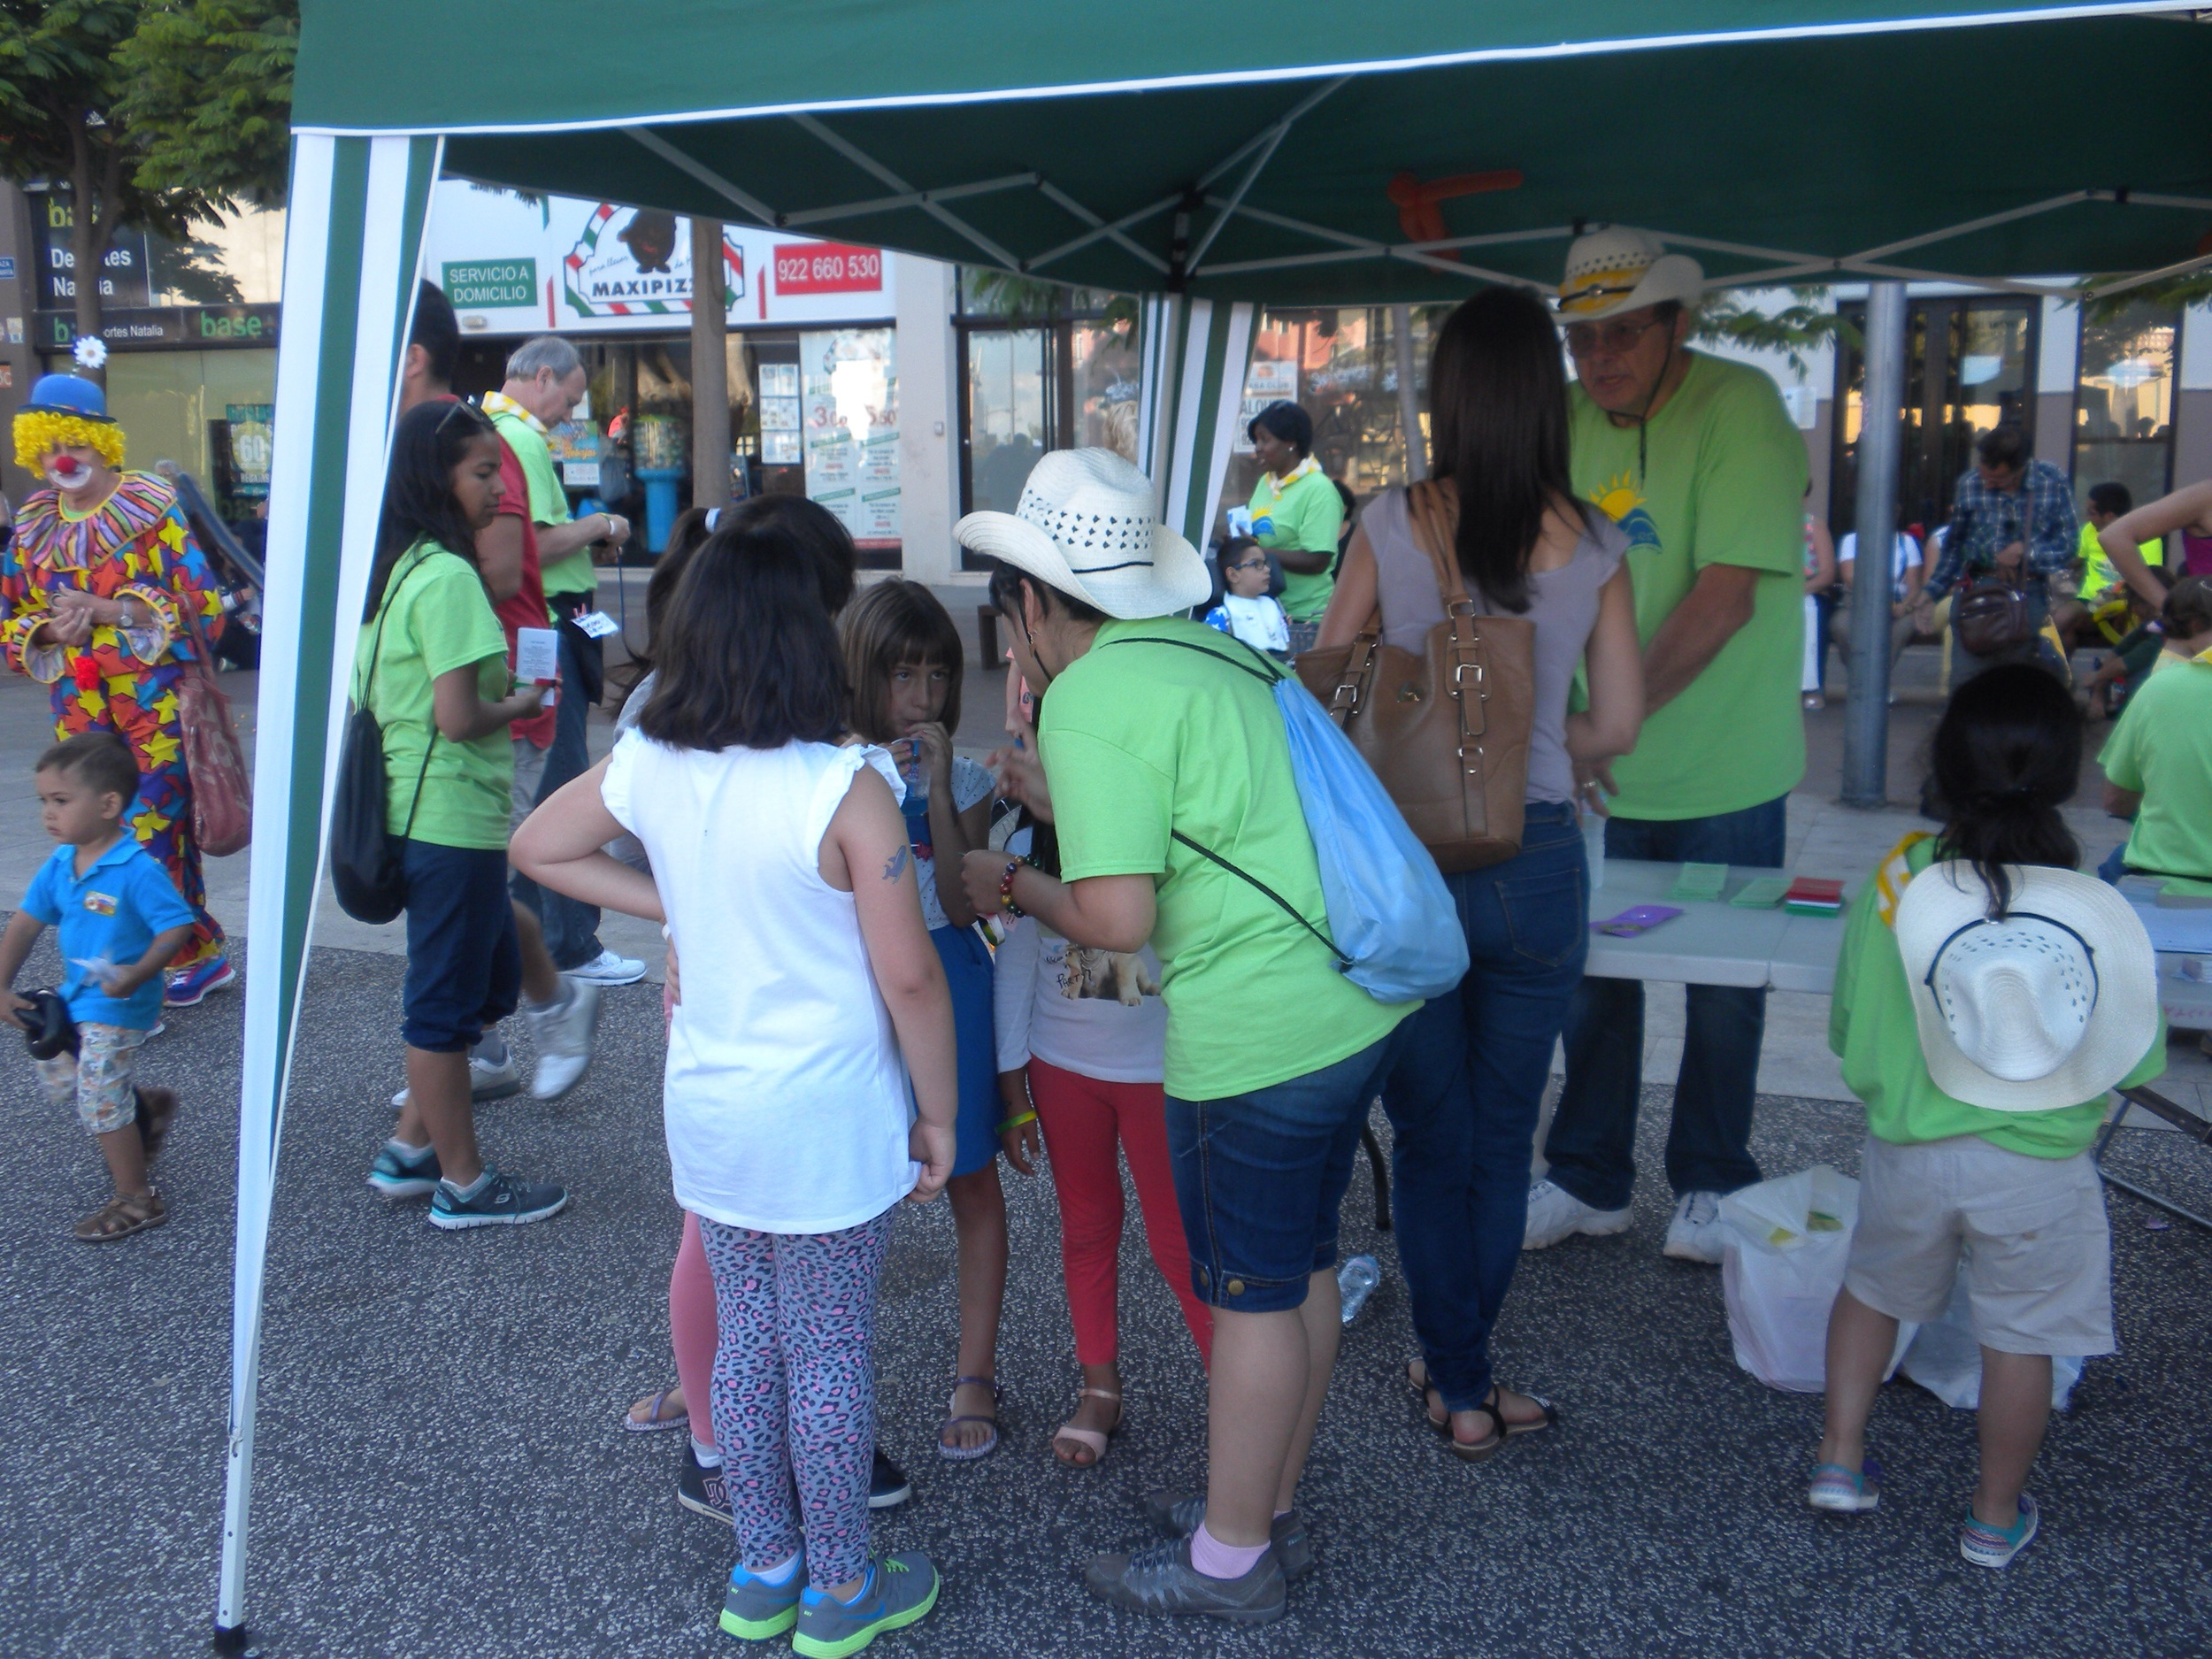 Team members from Madrid and JFBC were available at the Salvation tent to talk with people who had questions.